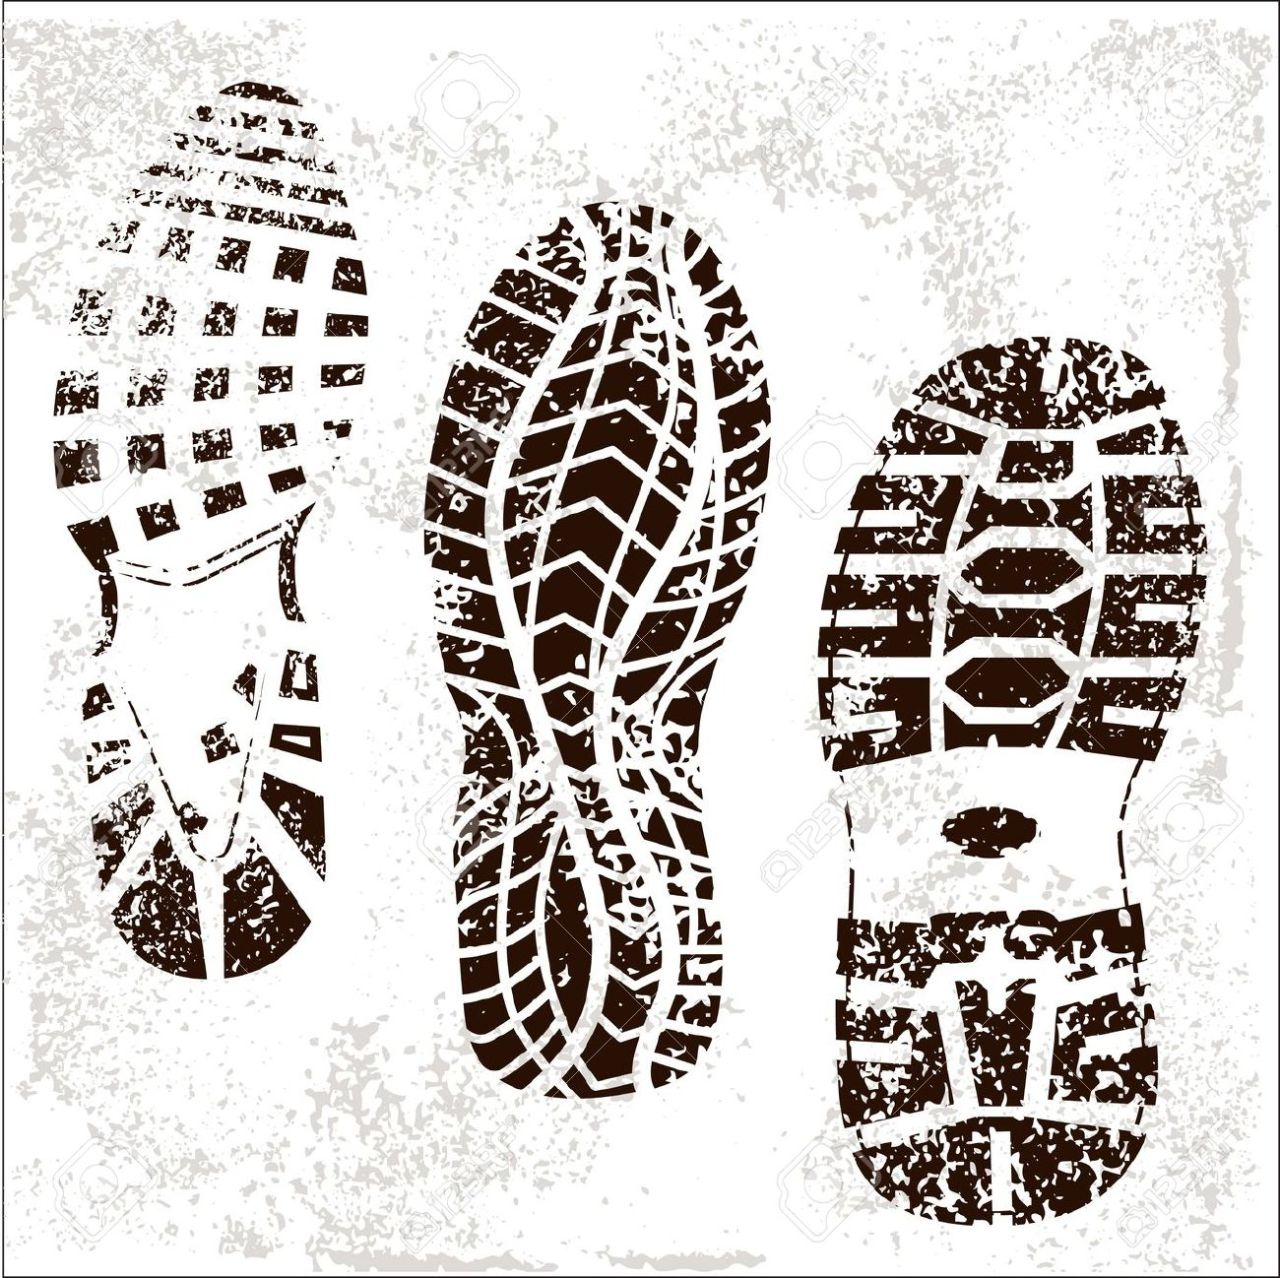 A picture of black shoeprints on a white surface.